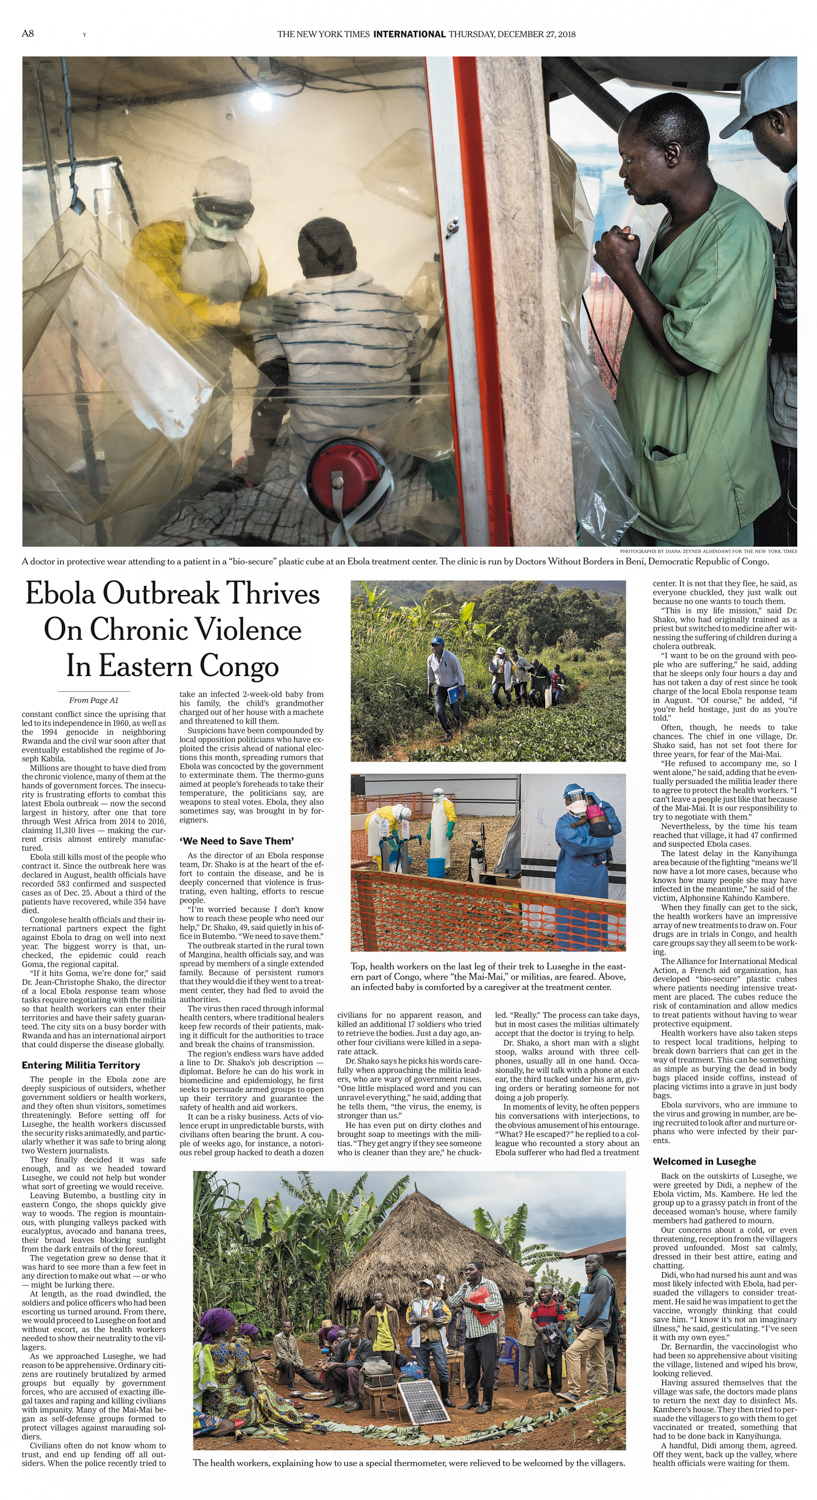 Ebola crisis thrives on violence in Congo forest  | The New York Times (print), national edition, page A1 and A4, Dec 26, 2018